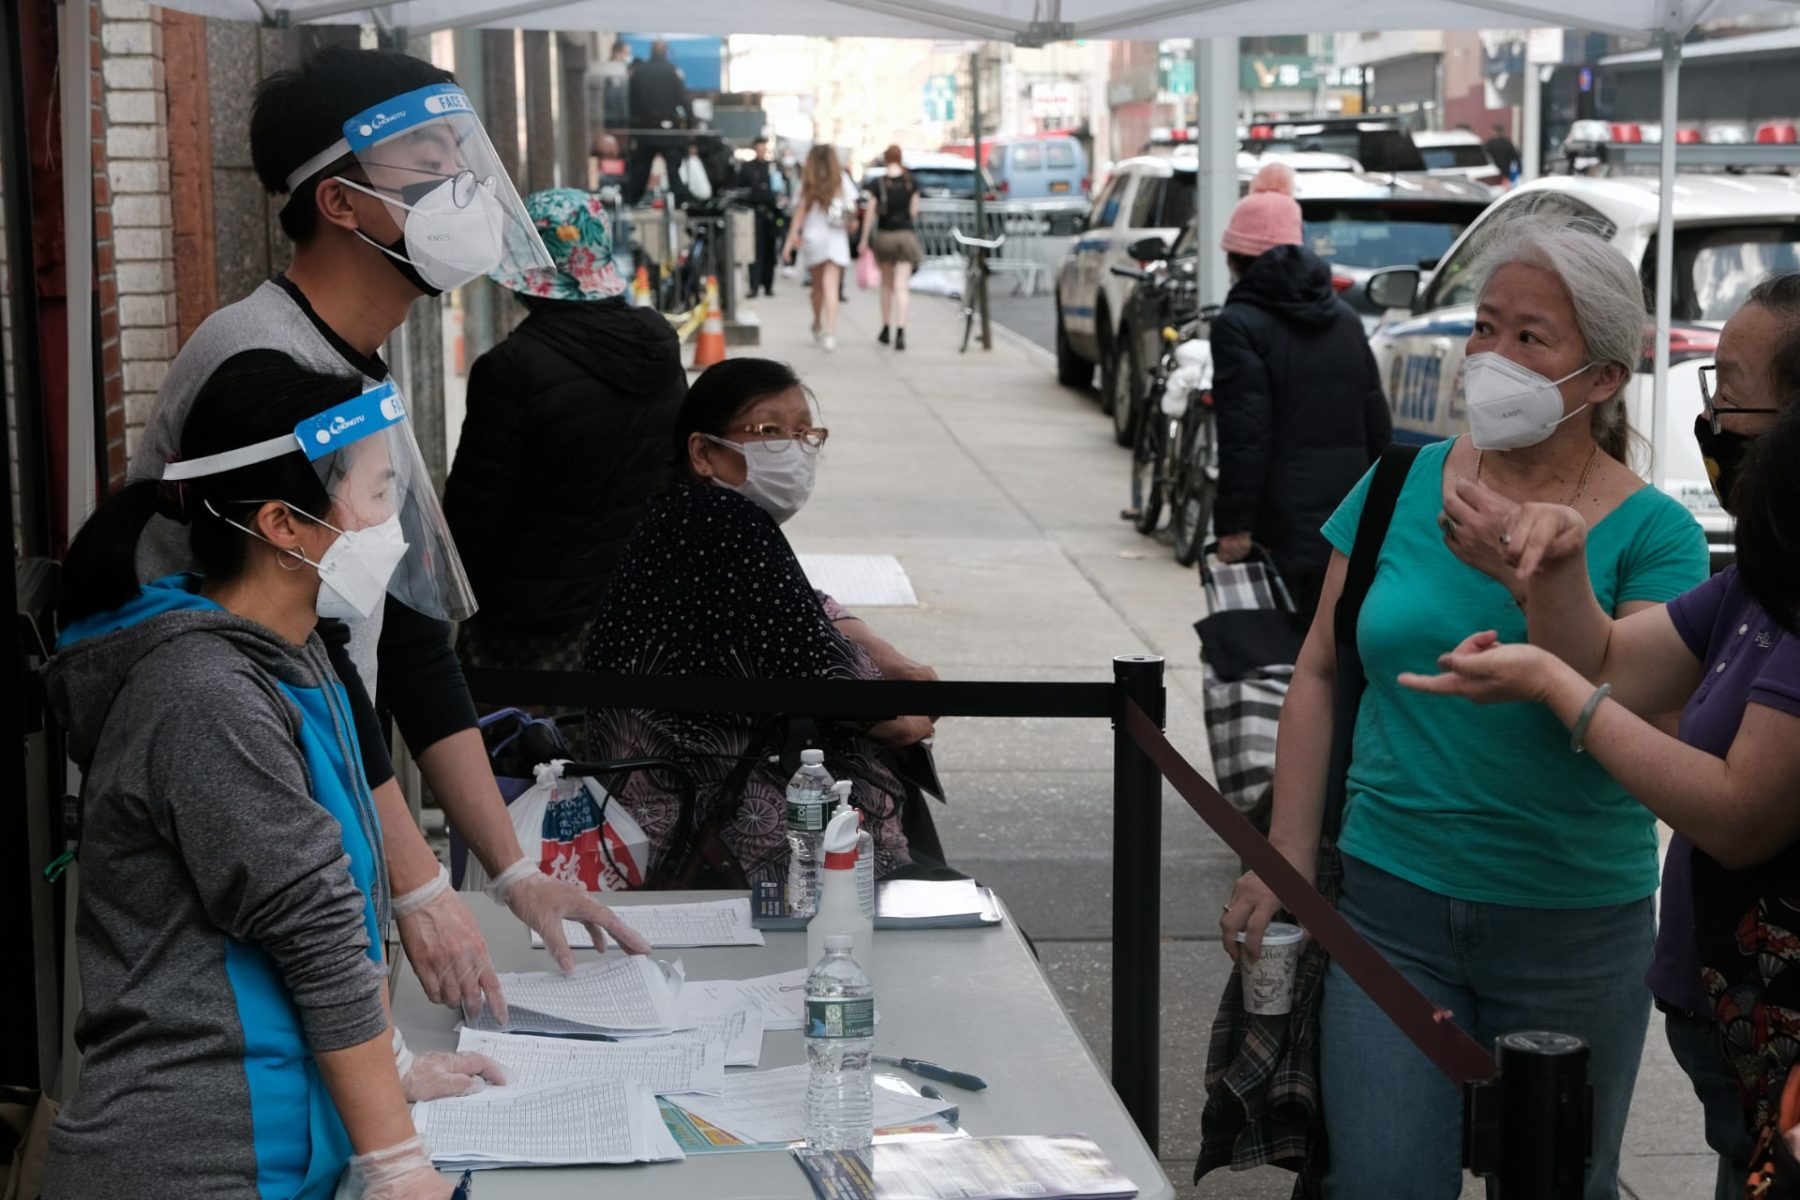 Vaccination clinic in New York